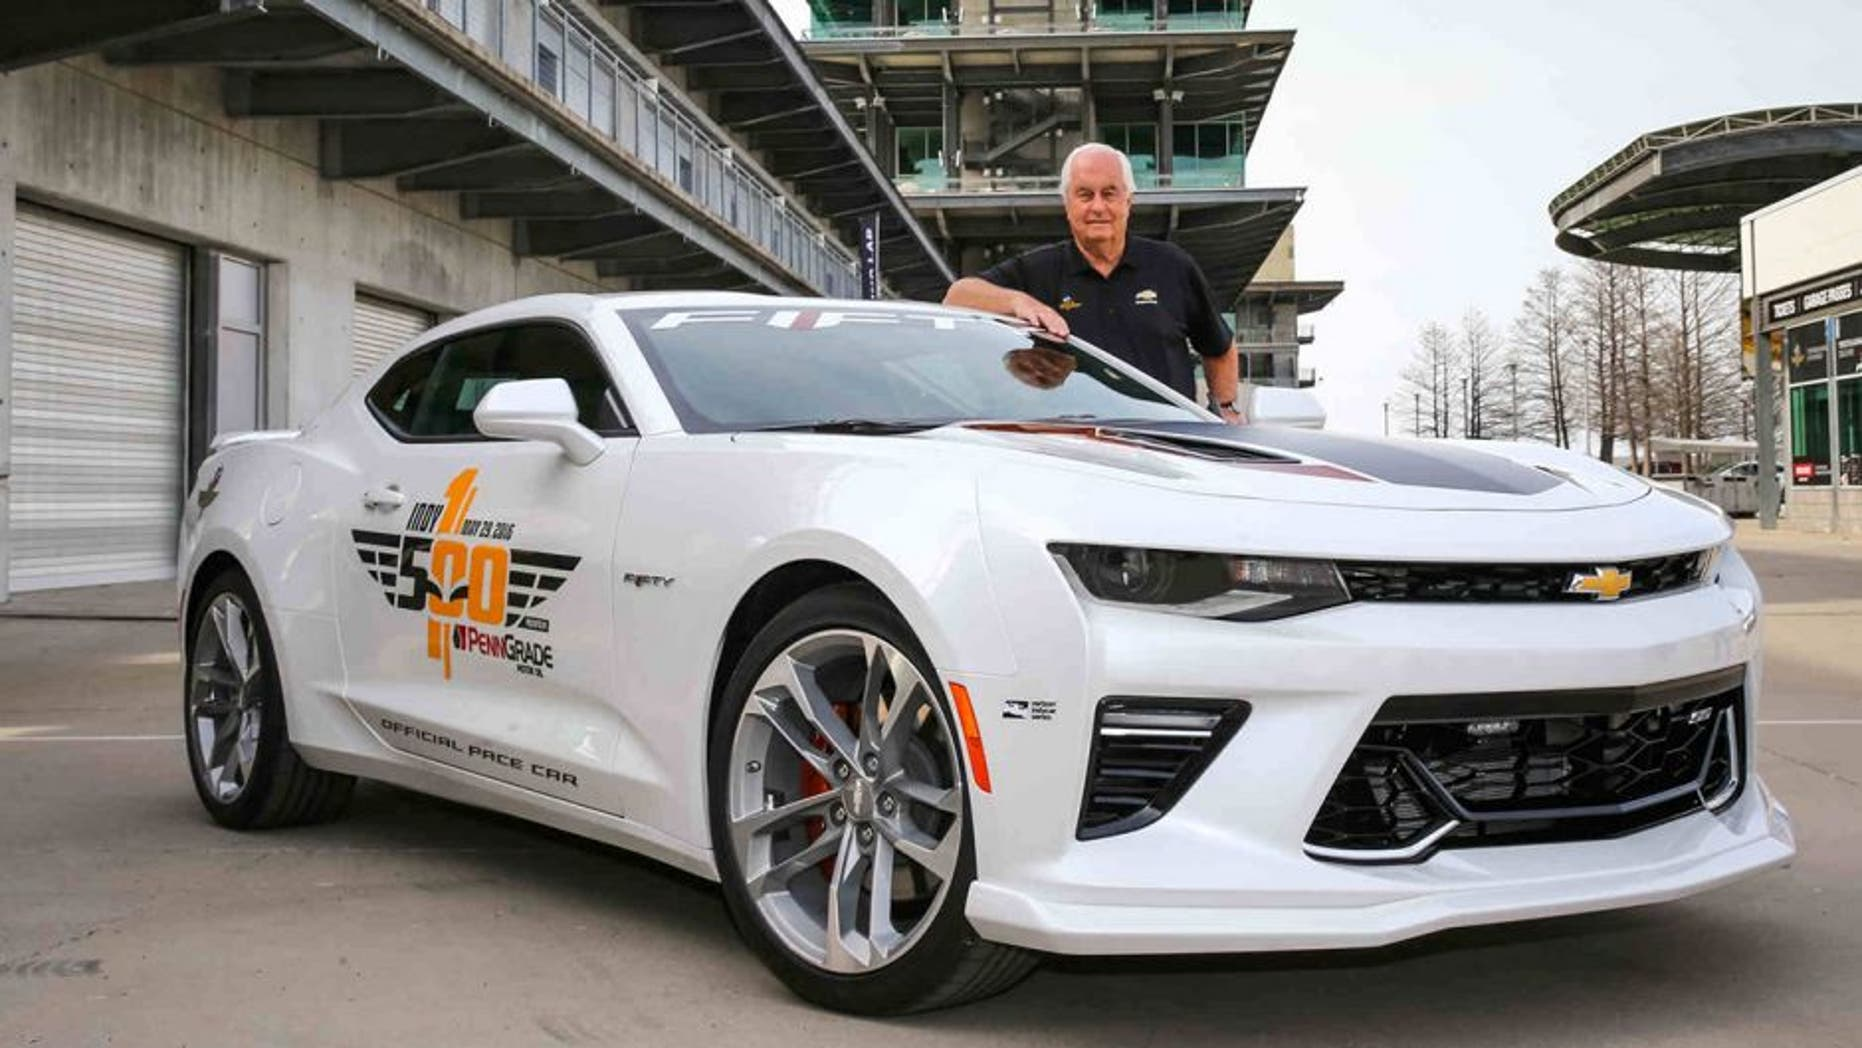 The 2017 Camaro SS 50th Anniversary Edition will lead the 100th running of the Indianapolis 500 at the Indianapolis Motor Speedway in Indianapolis, Indiana next month, driven by motorsports legend Roger Penske, who is marking 50 years as a race team owner. (Photo by Bret Kelley/IMS for Chevrolet)